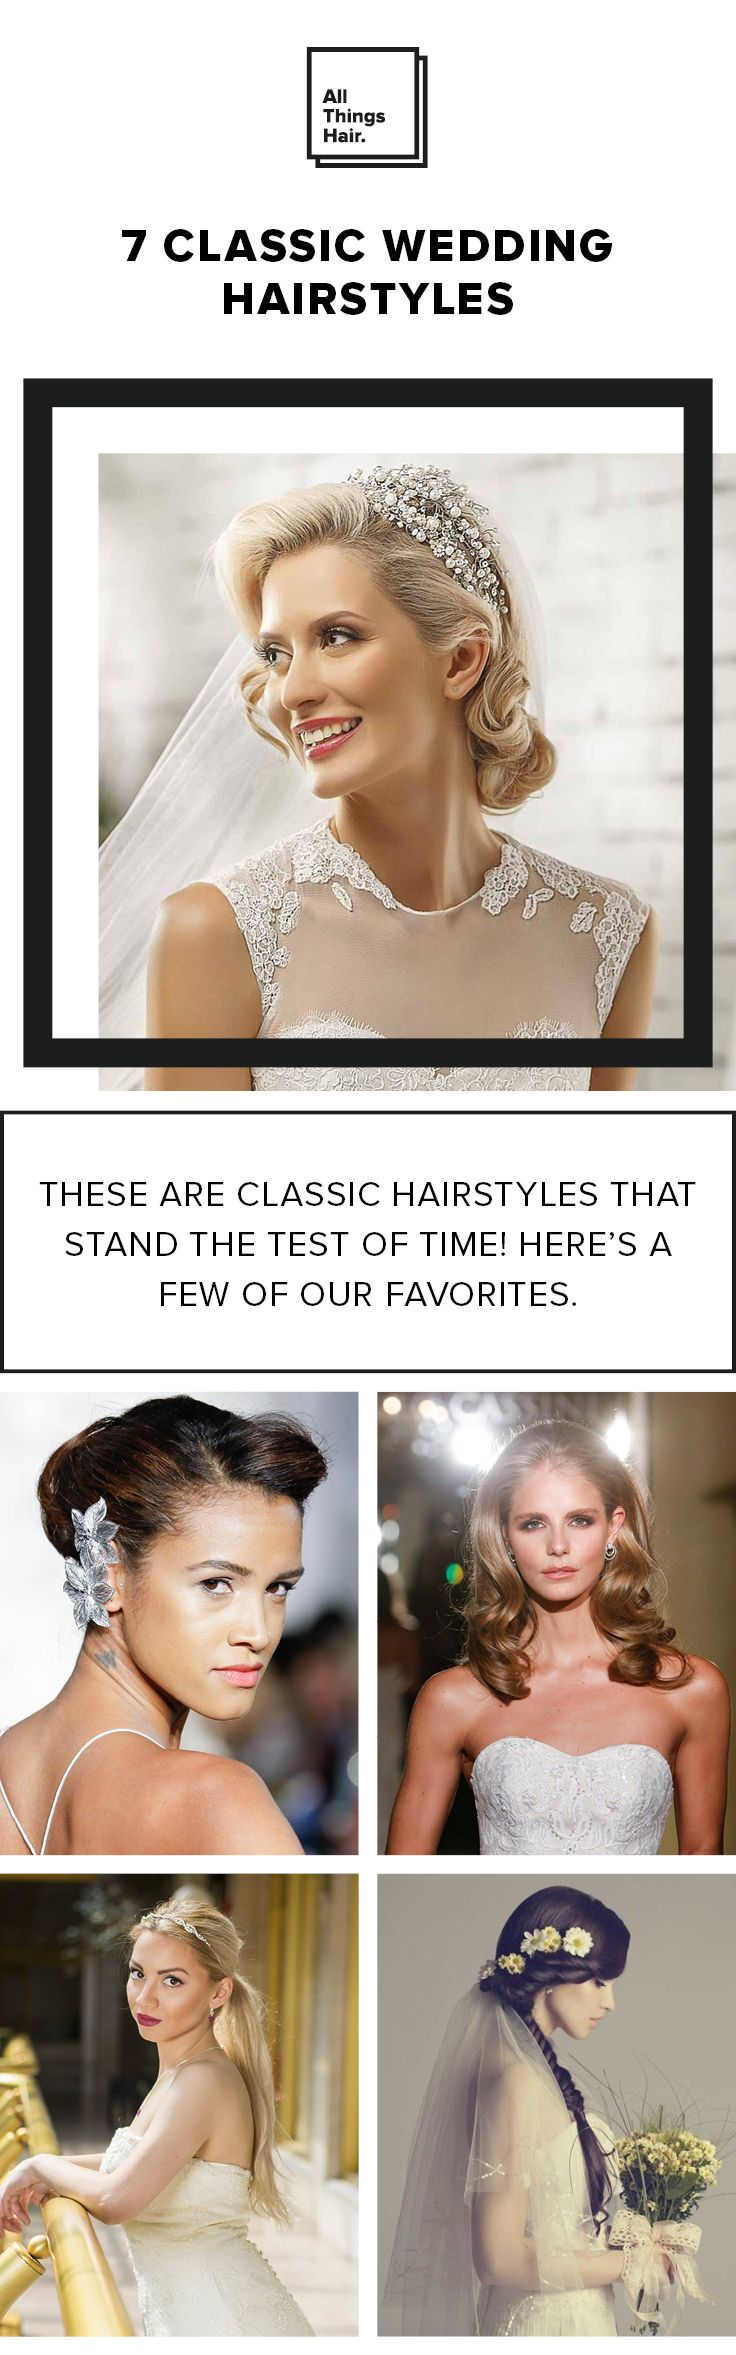 When it comes to wedding hairstyles for your big day, we've got you covered. From a bridal ponytail to retro curls, check out our favorite classic wedding looks. #Ad